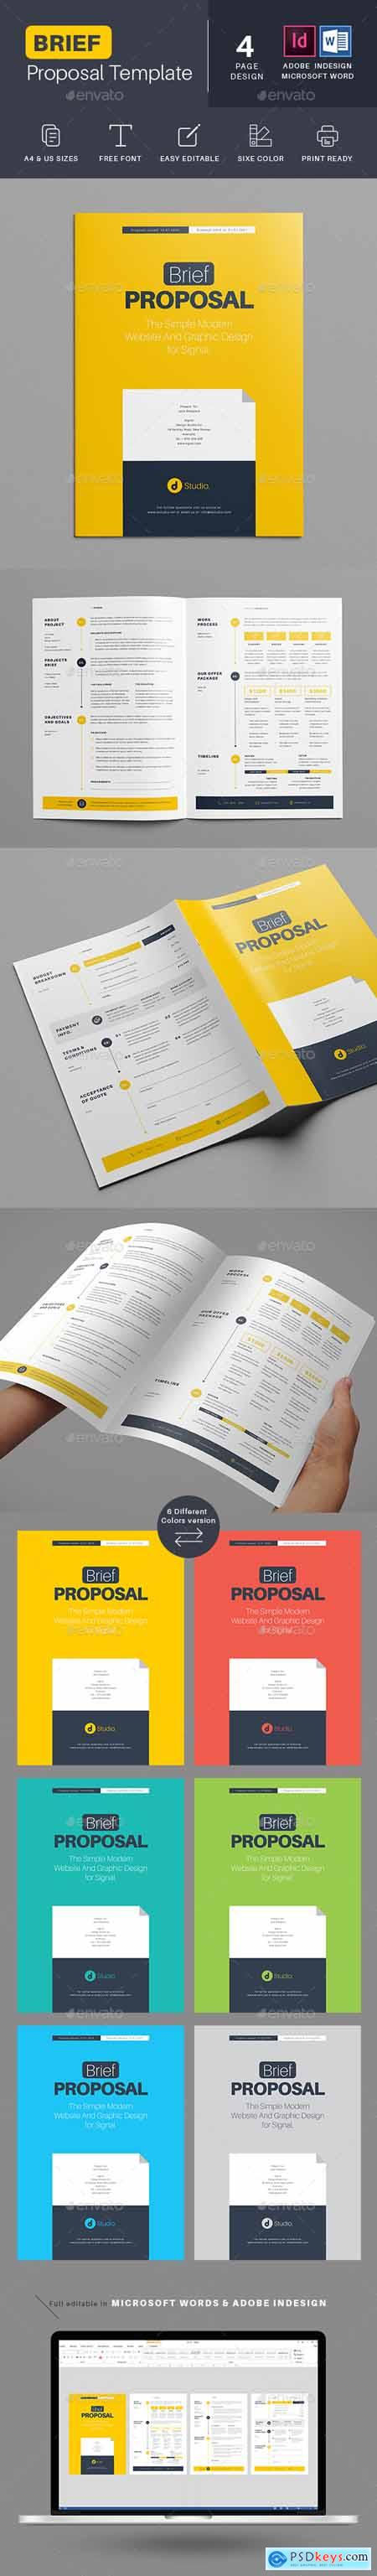 Brief Proposal Templates 27514353